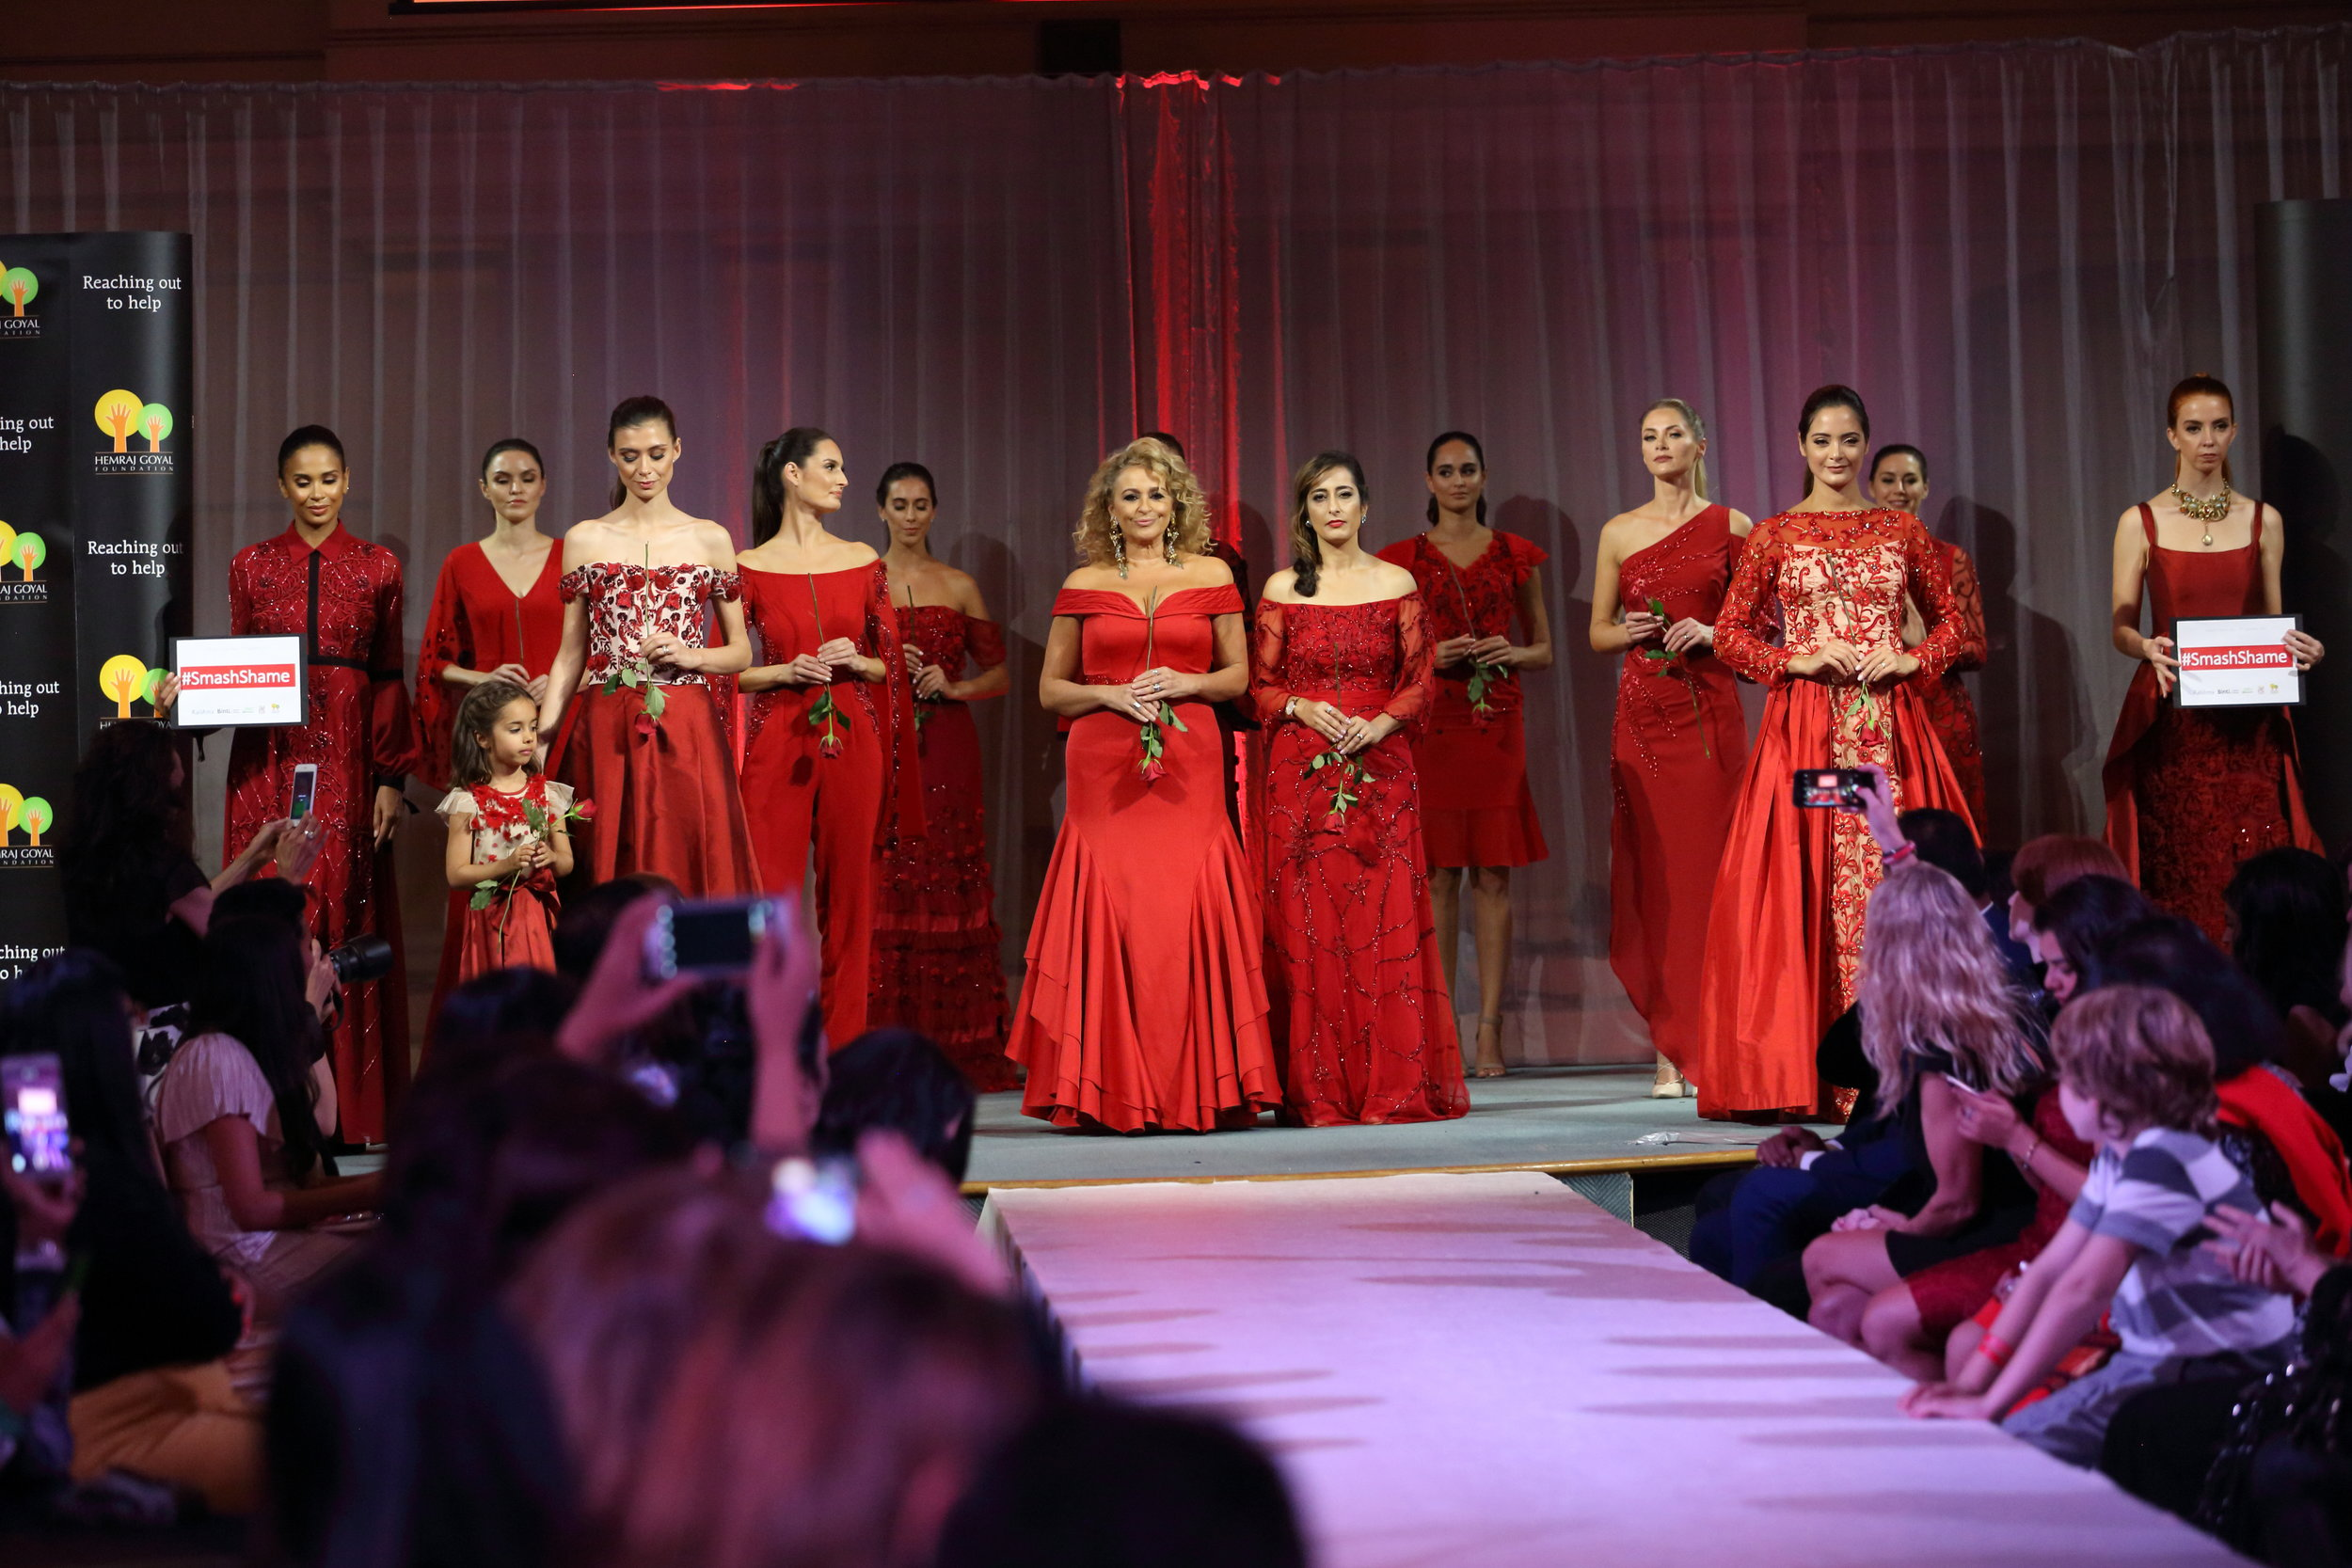 Breaking Silence - Stars walk the fashion ramp to shine a light on the serious cause of Female Genital Mutilation and Menstrual Dignity.Milana was tasked to ensure the event ran smoothly, and design the venue layout.